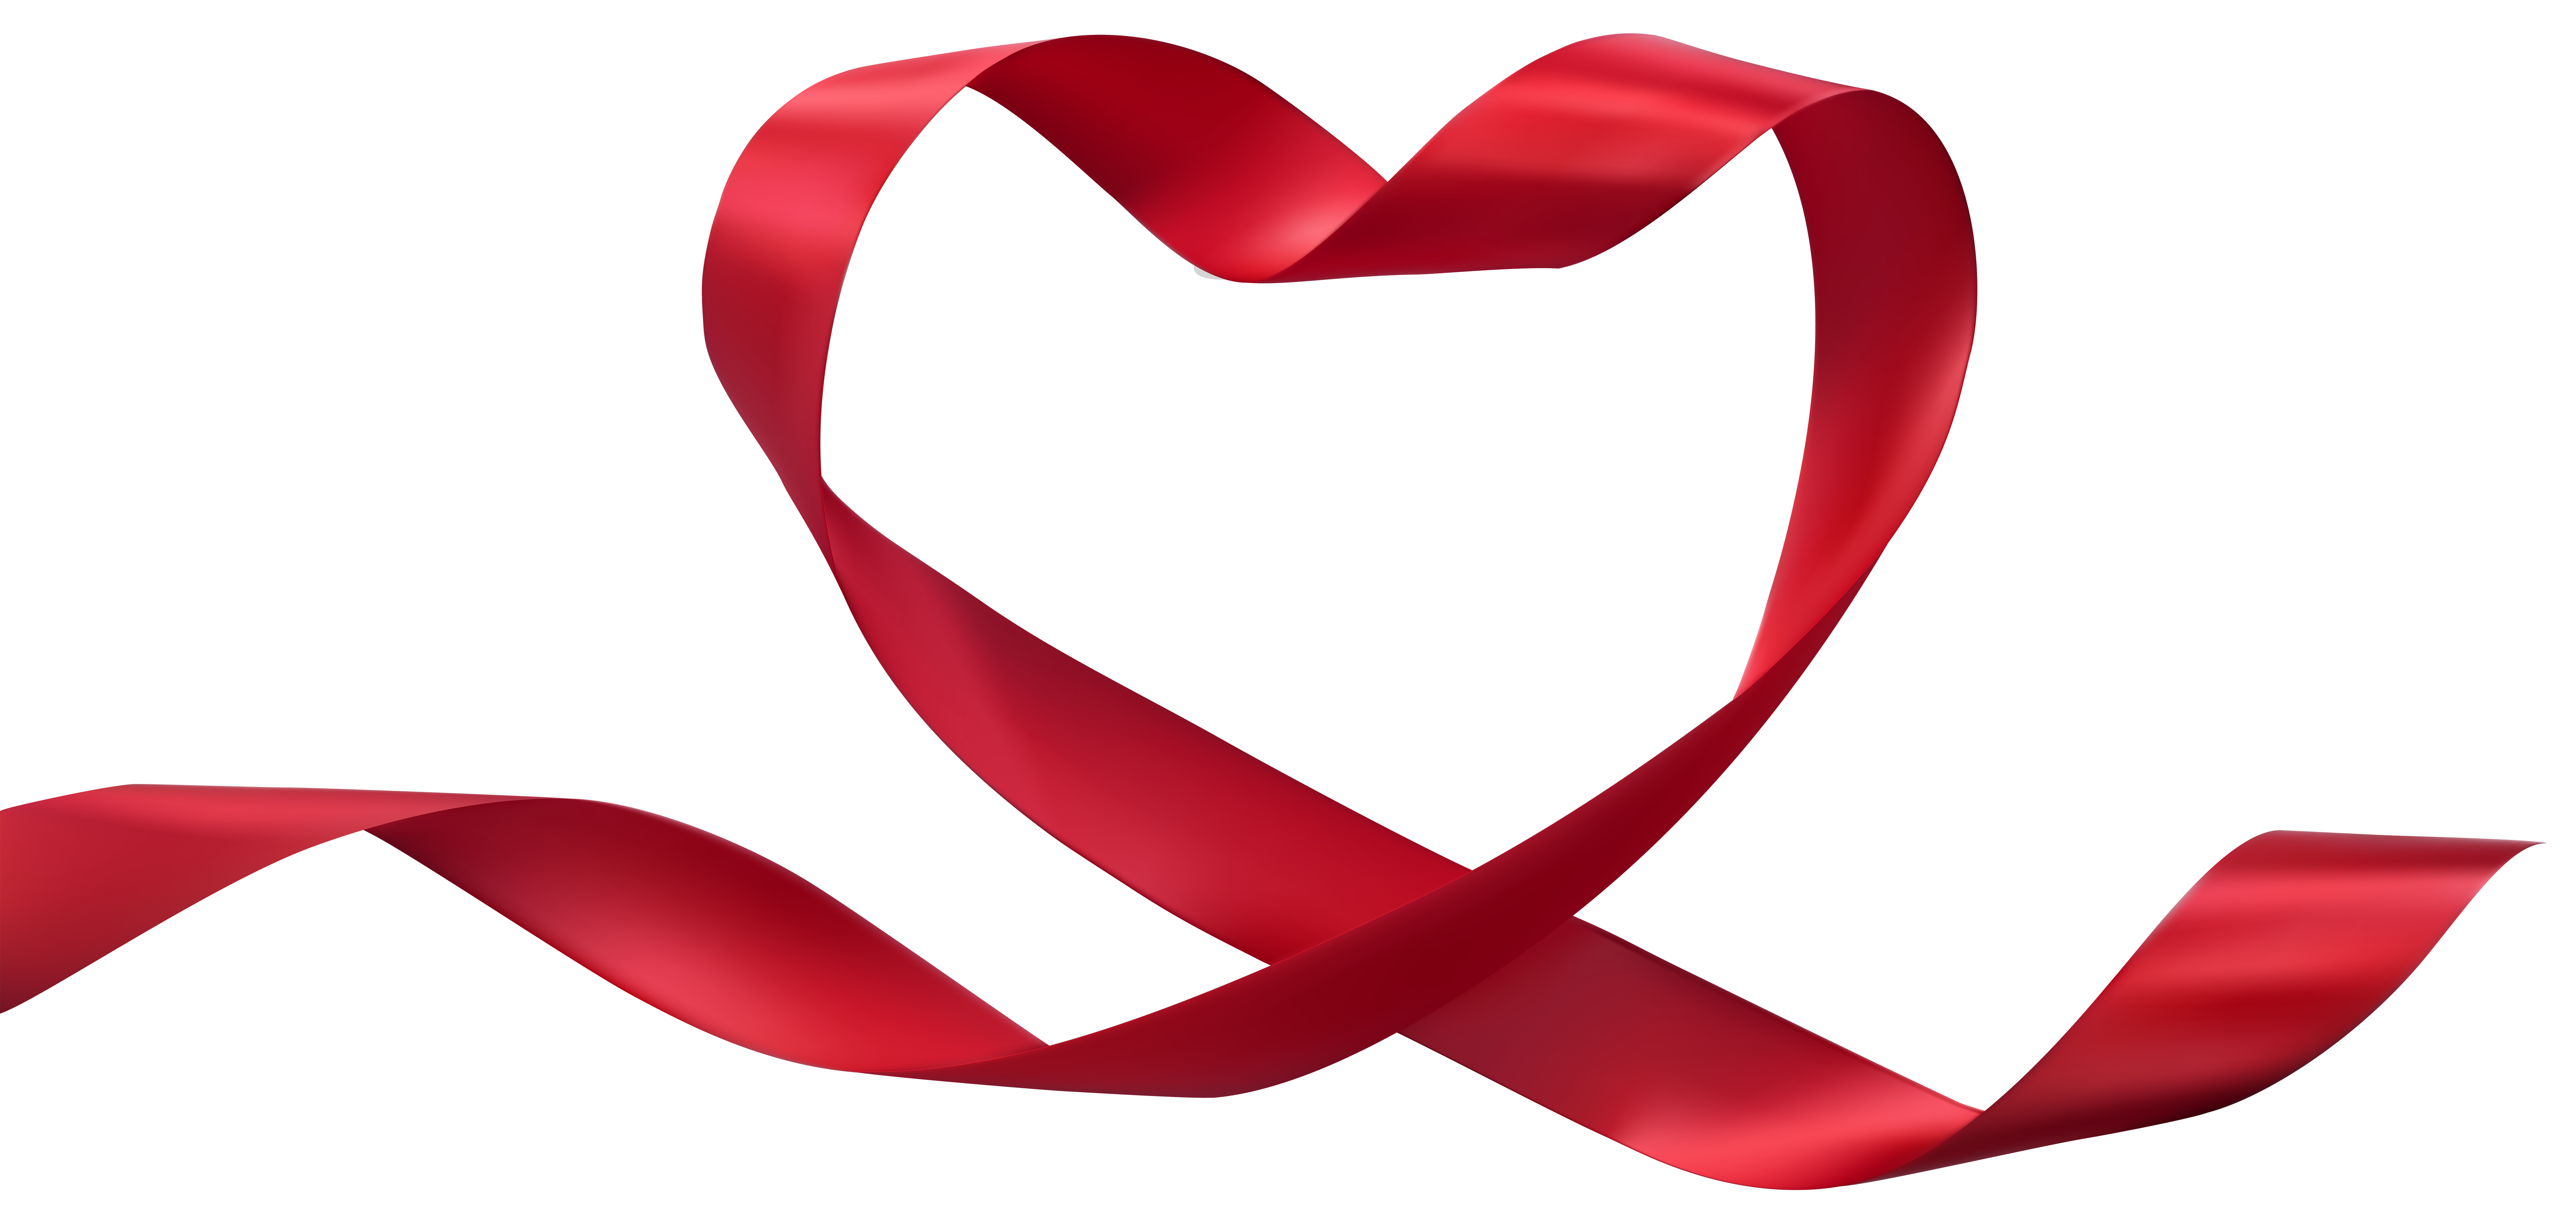 Transparent clip art image. Heart ribbon png picture black and white library